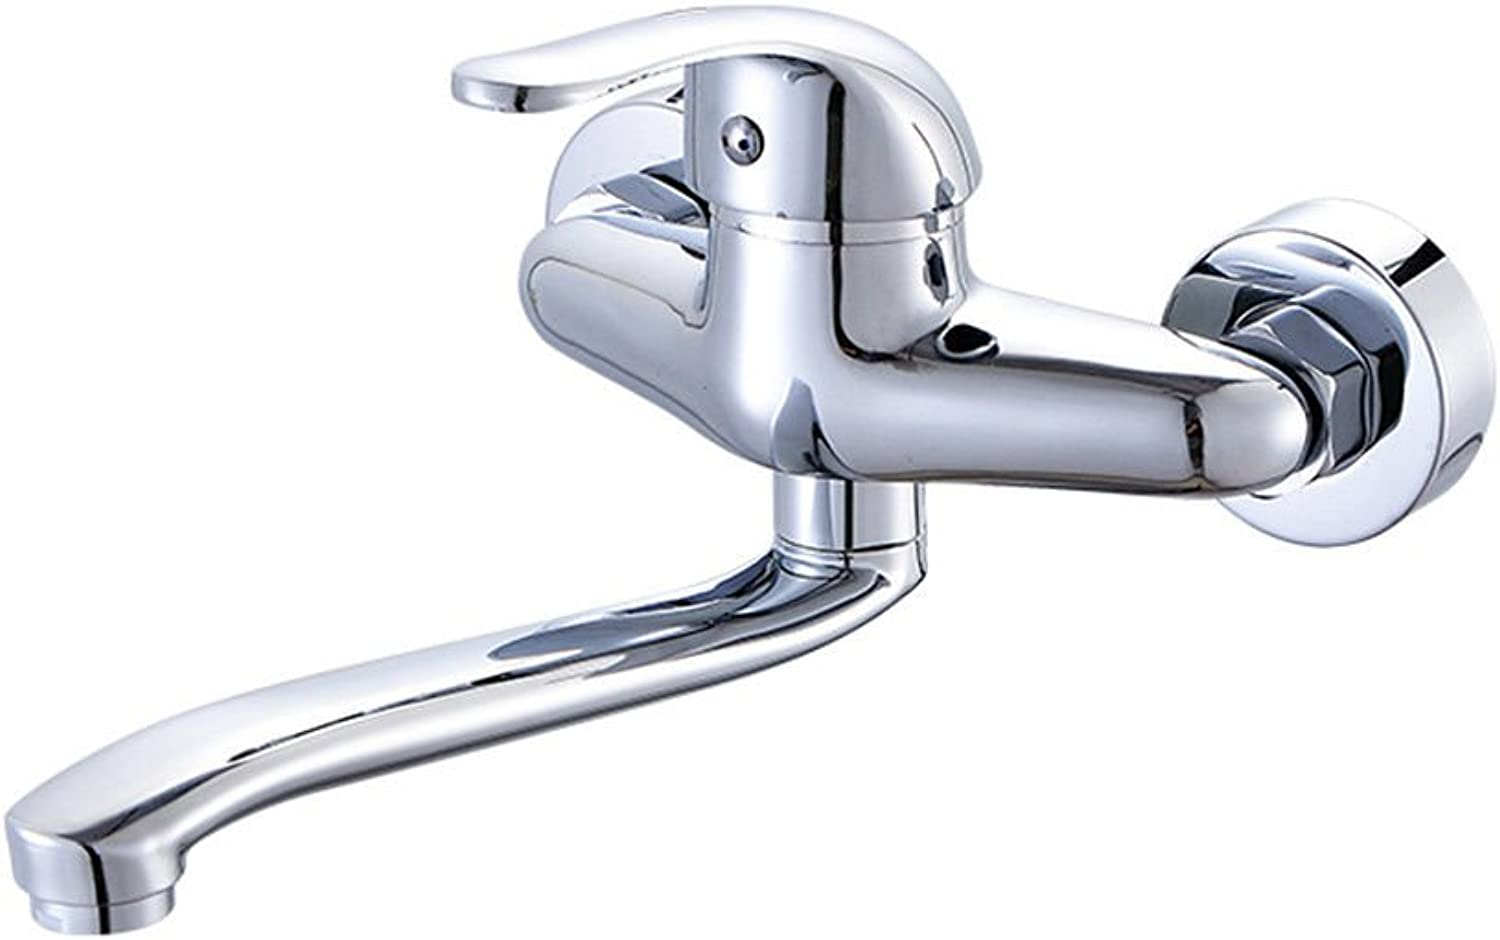 IJIAHOMIE Style of Bathroom Sink Taps, Bathroom Faucets,Waterfall Basin Sink Mixer Tap Modern in-Wall hot and Cold, Kitchen Sink Basin Wall Mounted Double-Deck Double-Hole Laundry Pool, C